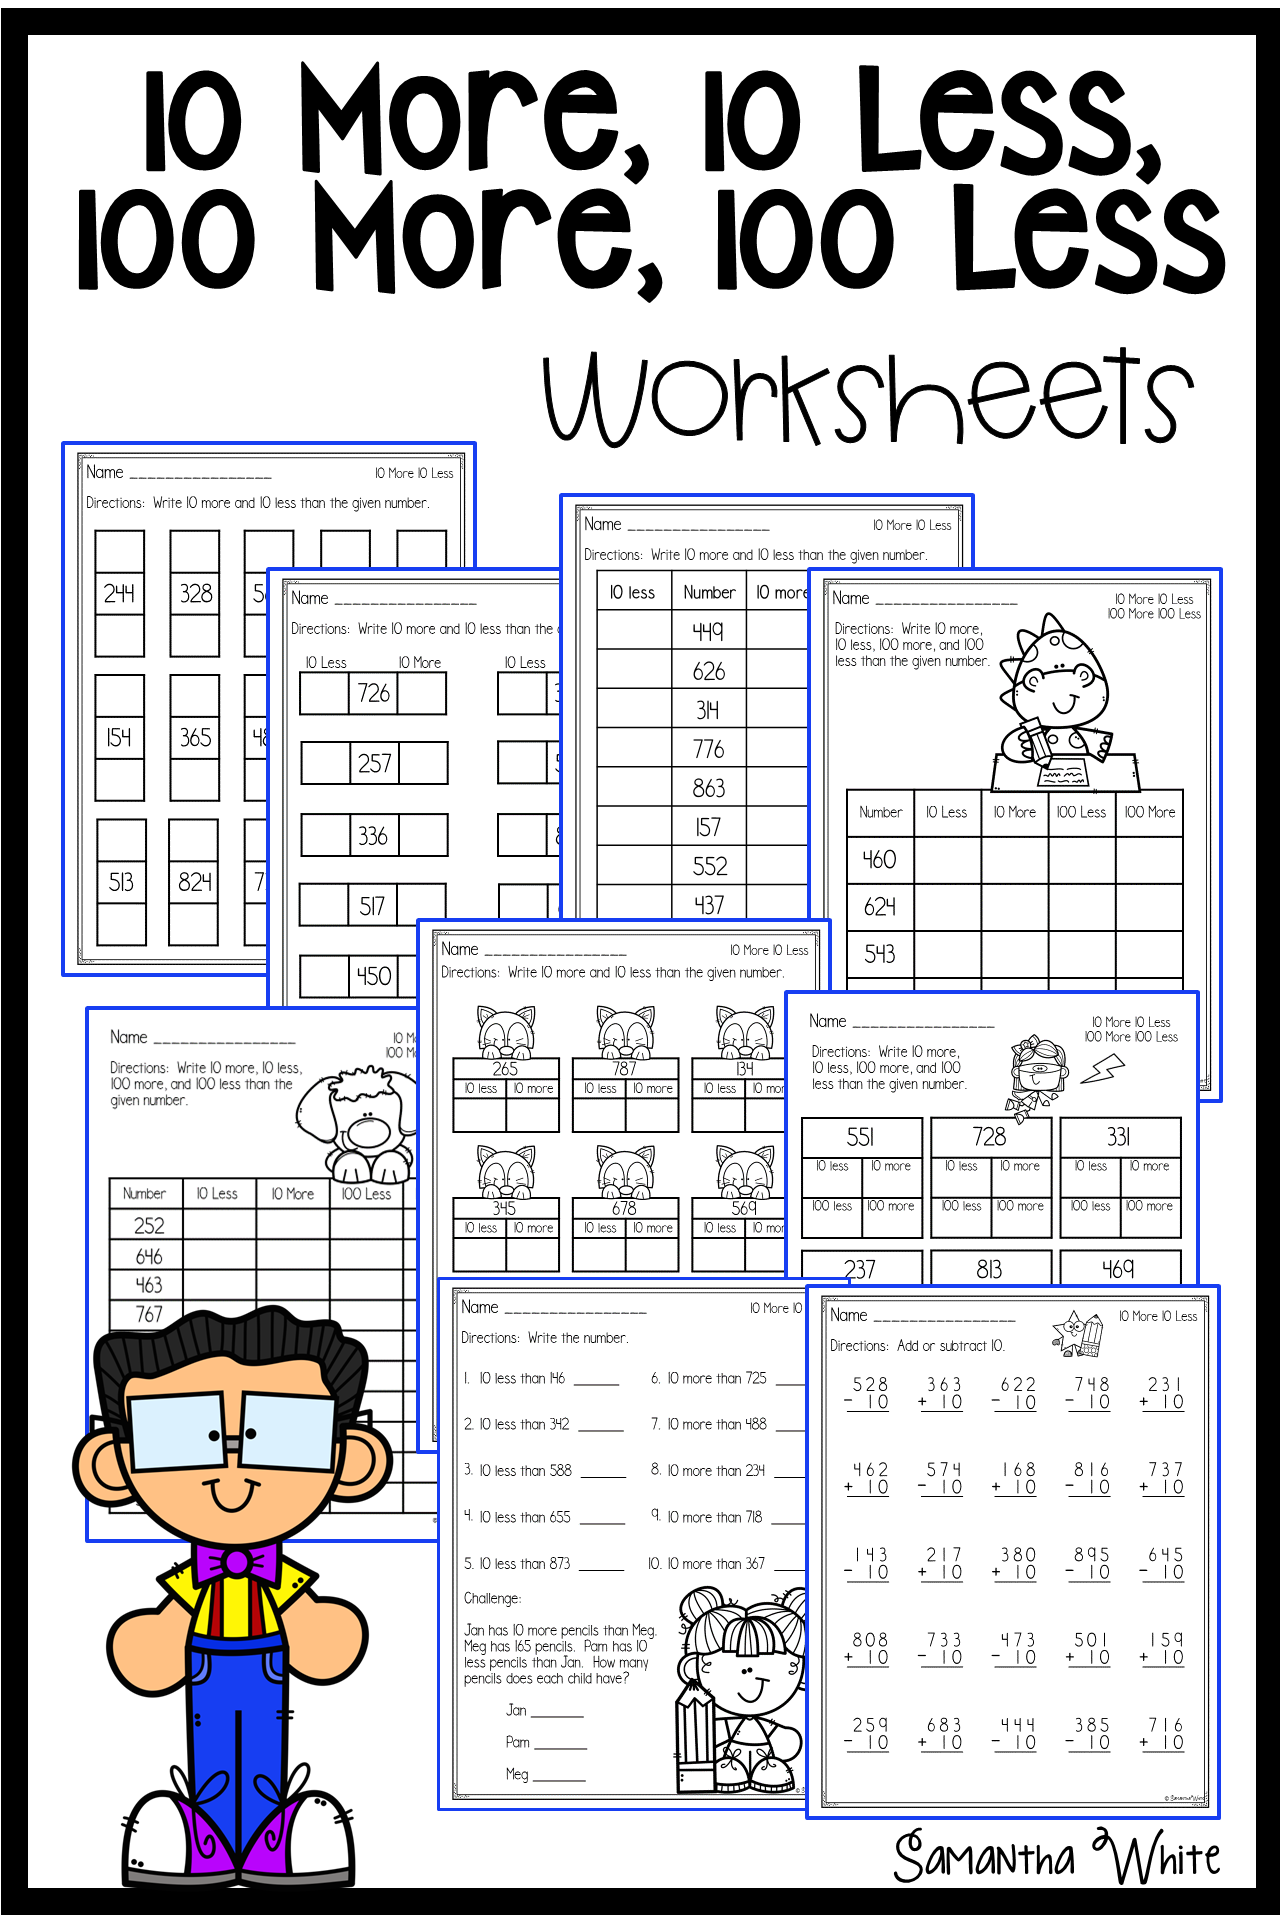 10 More 10 Less 100 More 100 Less Worksheets